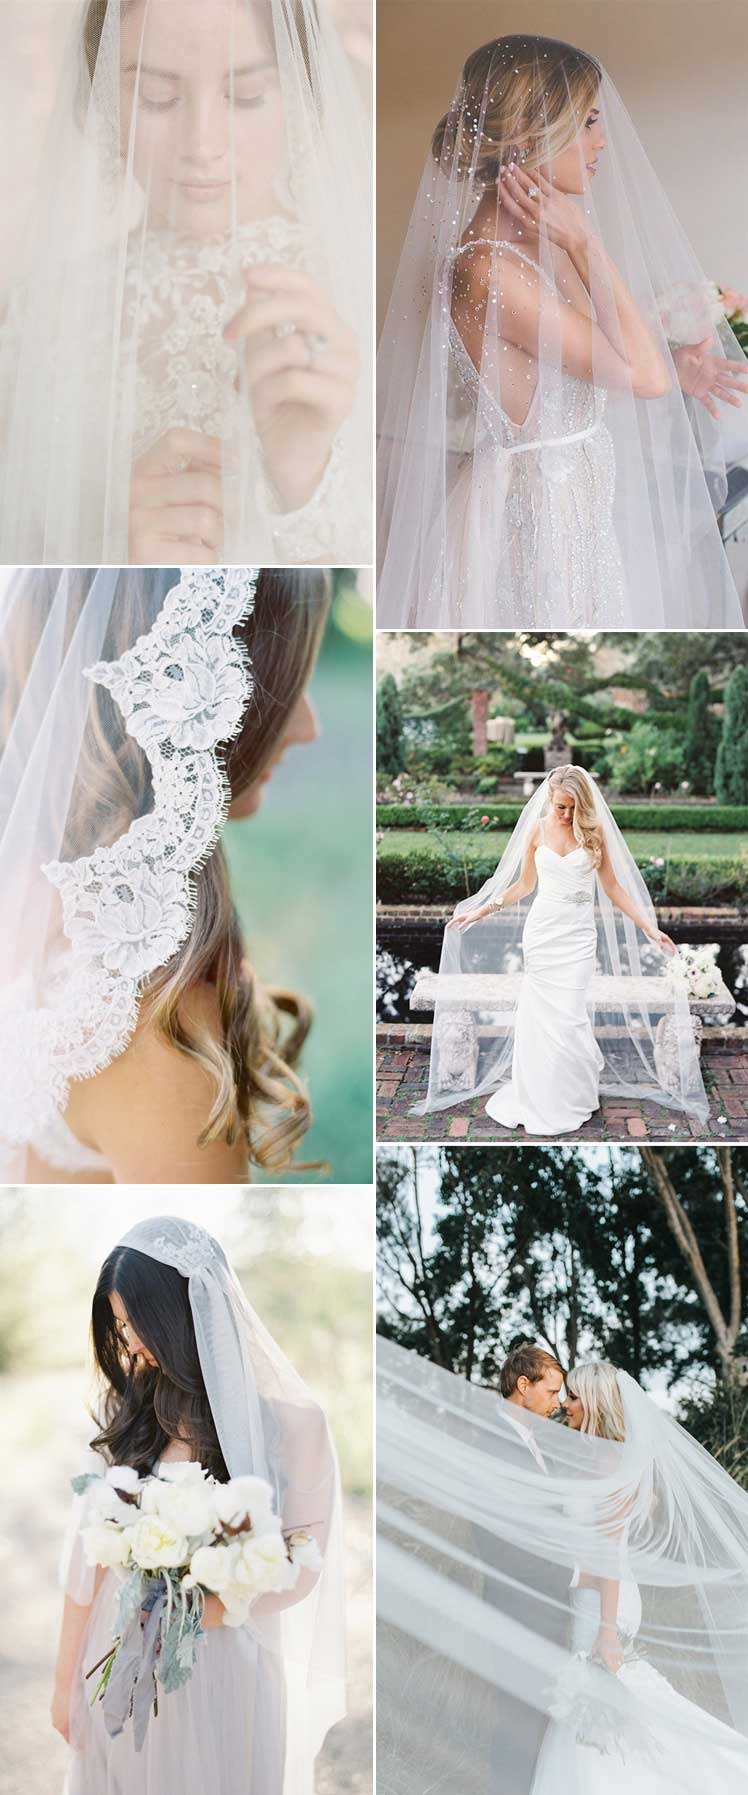 every style of wedding veil